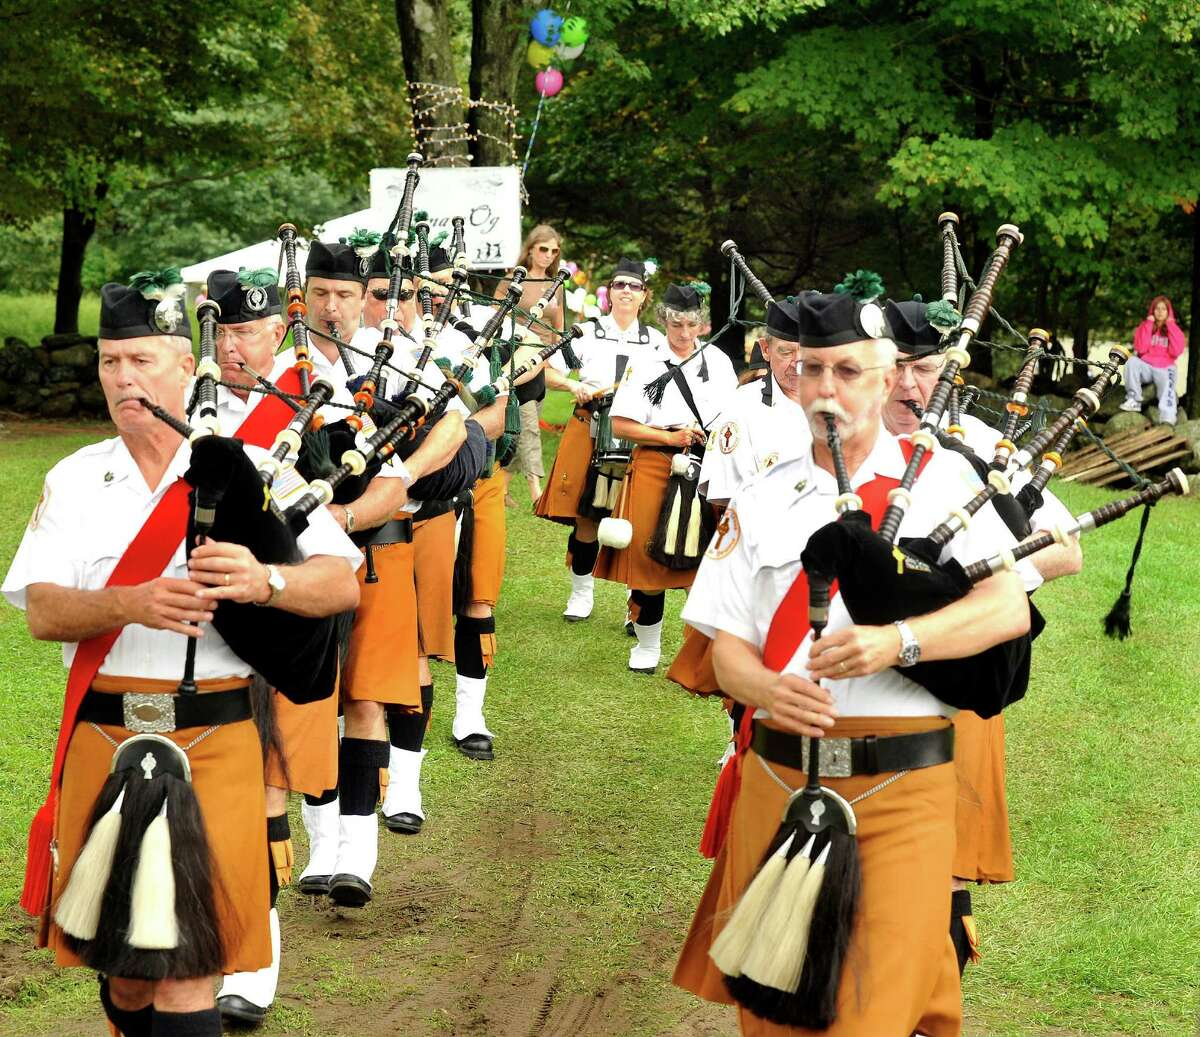 The Greater Danbury Irish Festival returns to Ives Concert Park on Friday, Sept. 16, and runs through Sunday, Sept. 18. Members of the Celtic Cross Pipes and Drums are seen here making their entrance at the annual festival.